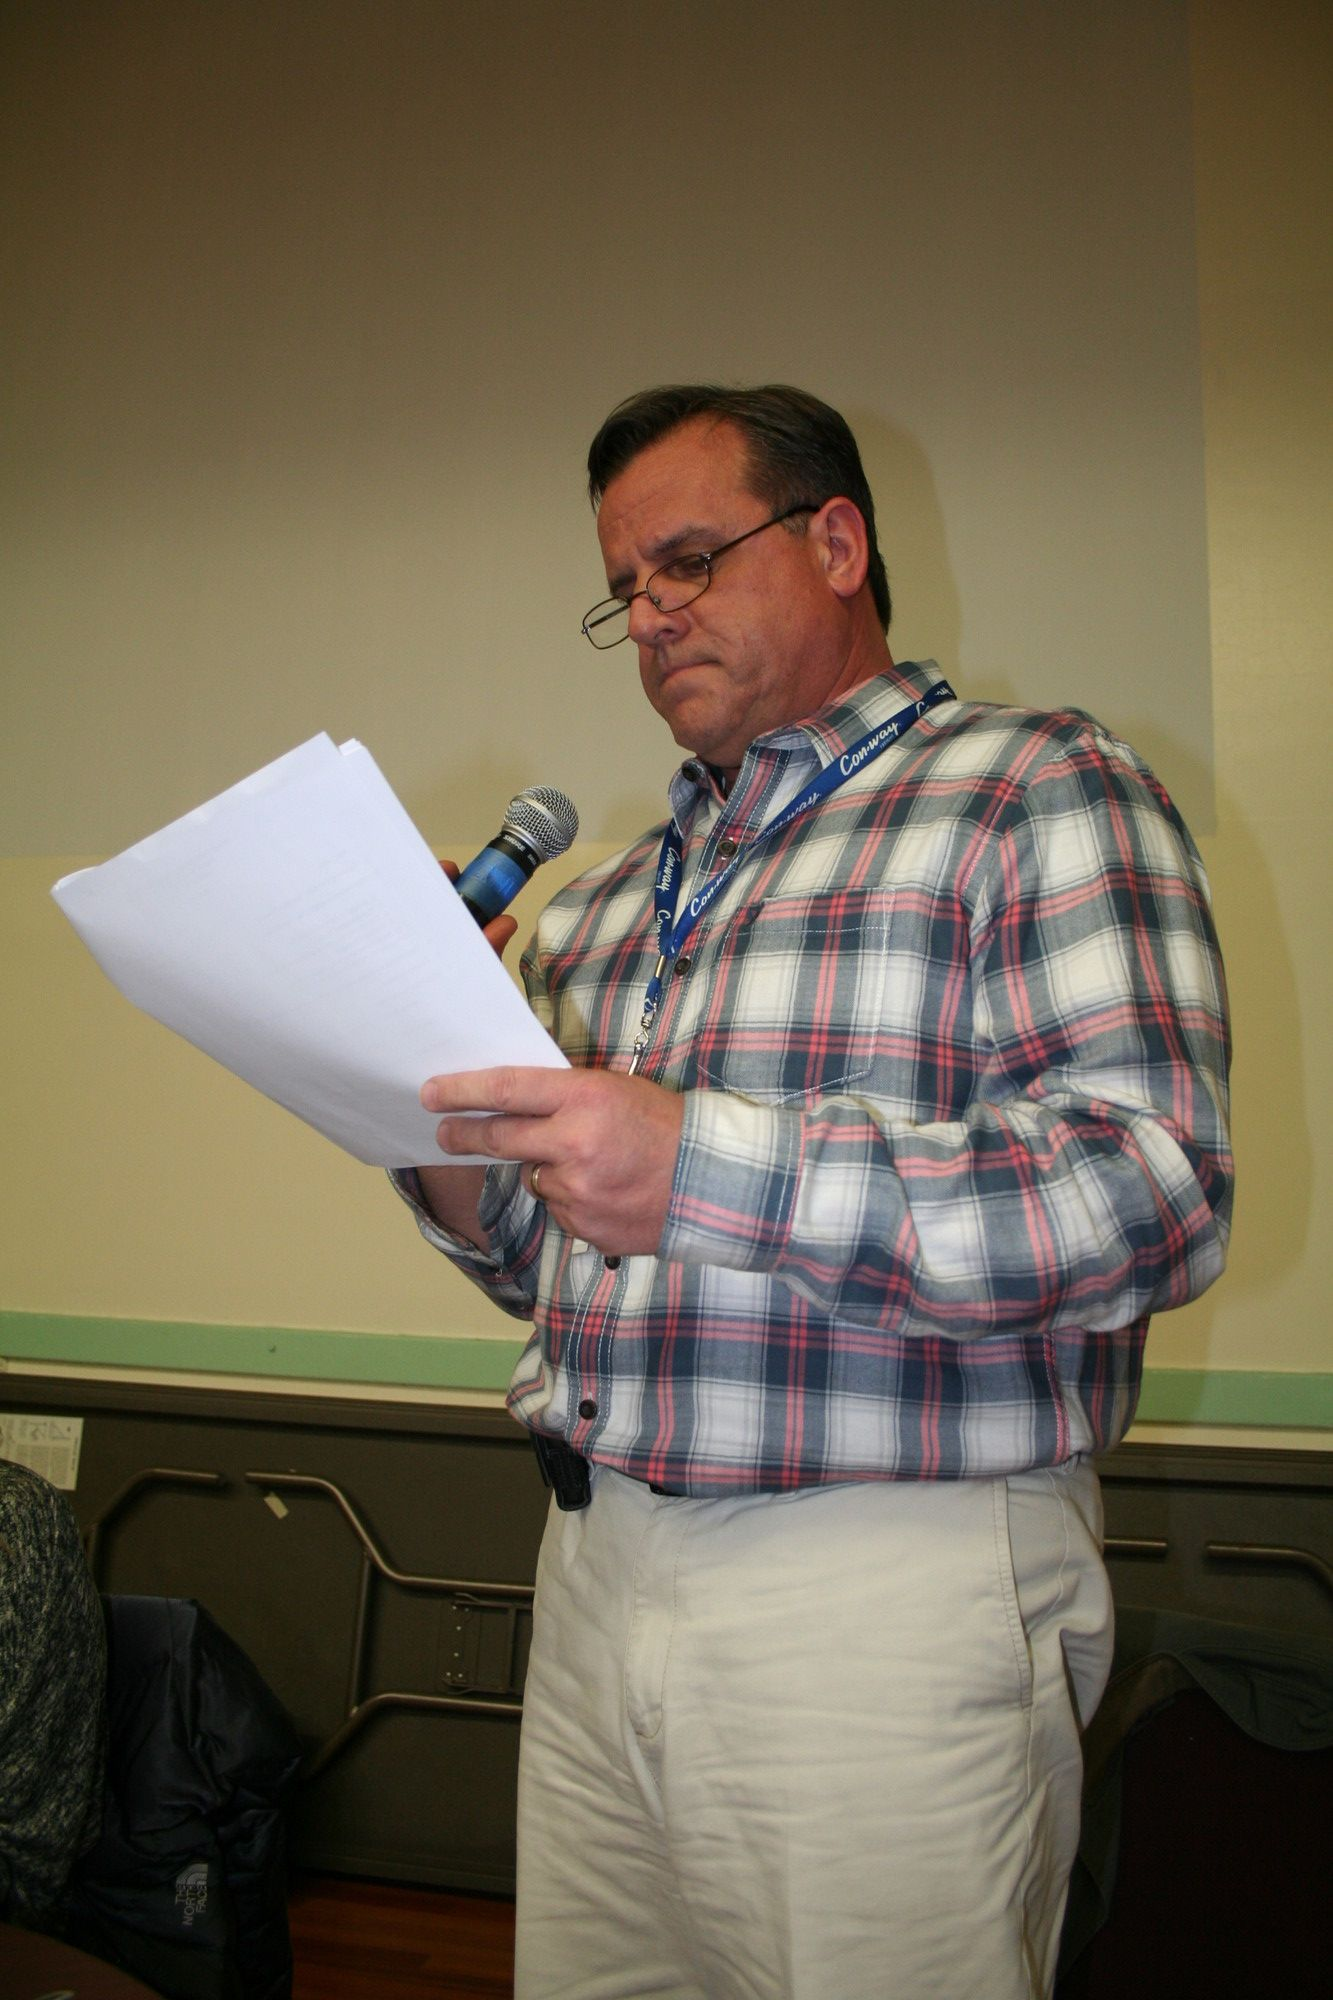 Kenneth Rochler, a Woodmere resident and the father of four boys in the Hewlett-Woodmere School District, voiced his concerns about the teachers' contract and its impact on the budget at the public forum on March 21.